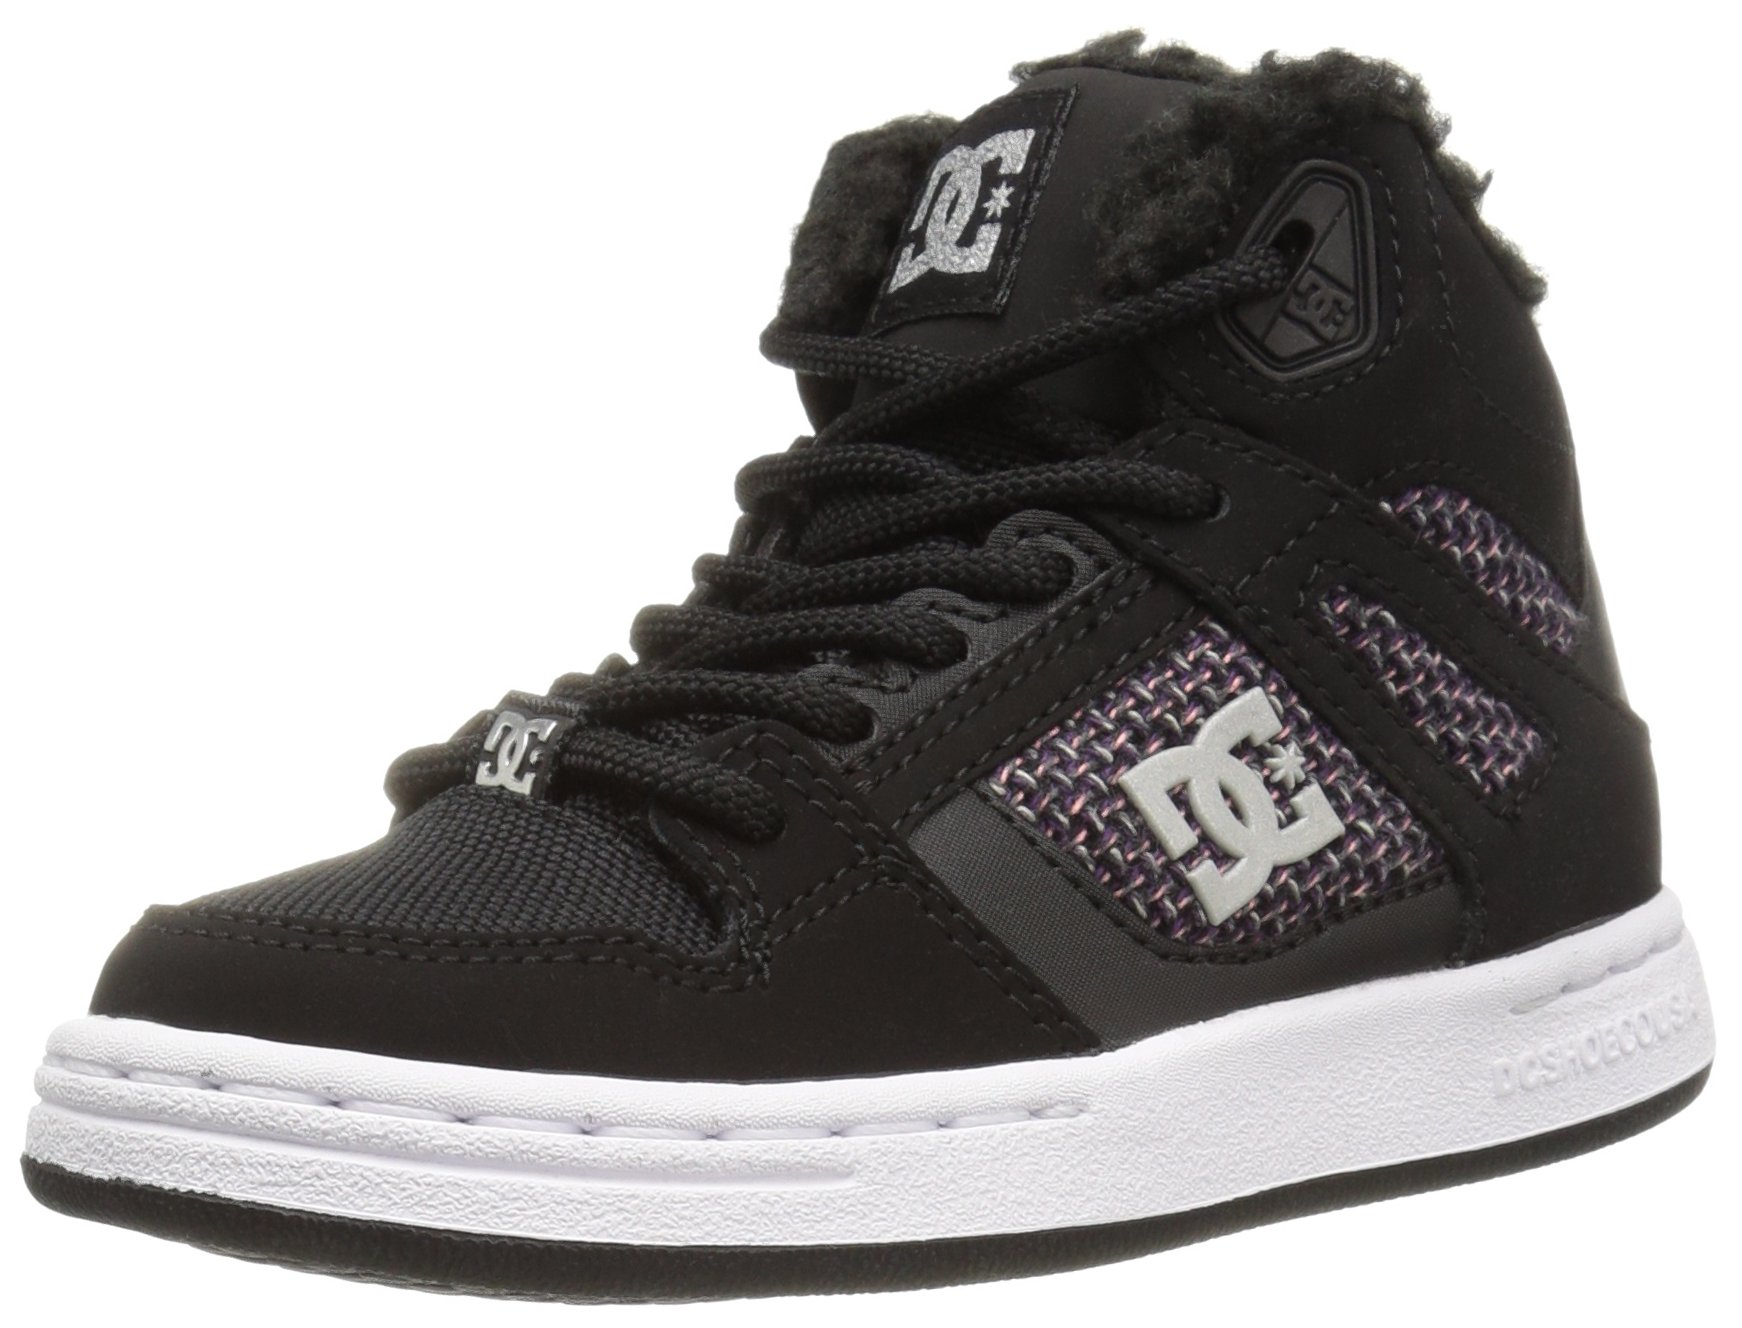 DC Girls Youth Rebound Wnt High Top Skate Shoes Sneaker, Black/White/Pink, 11.5 M US Little Kid